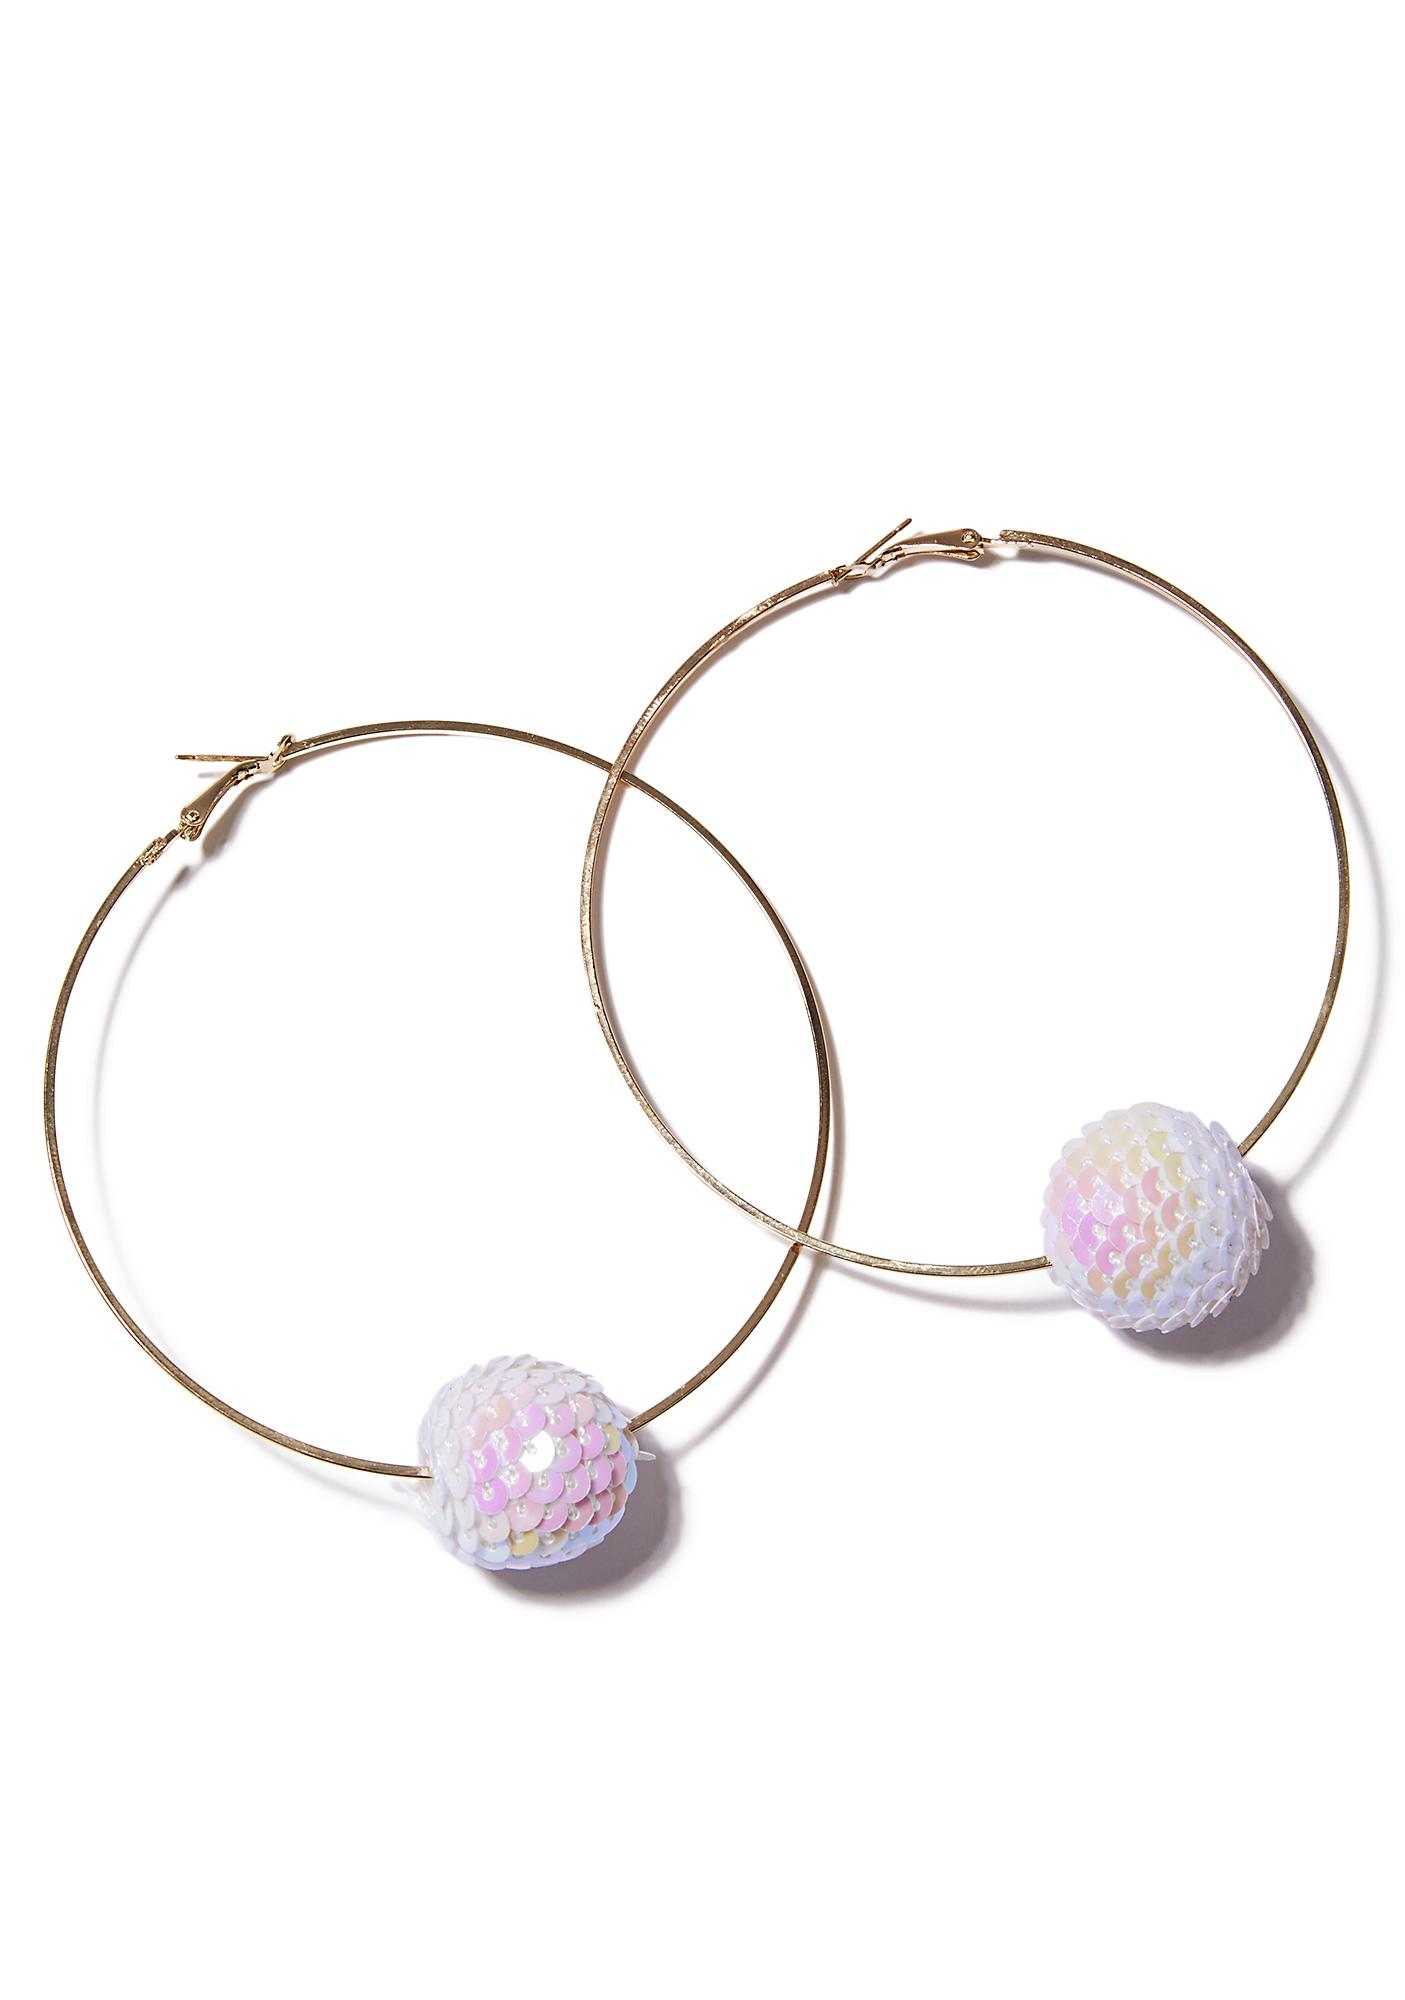 Jawbreaker Hoop Earrings